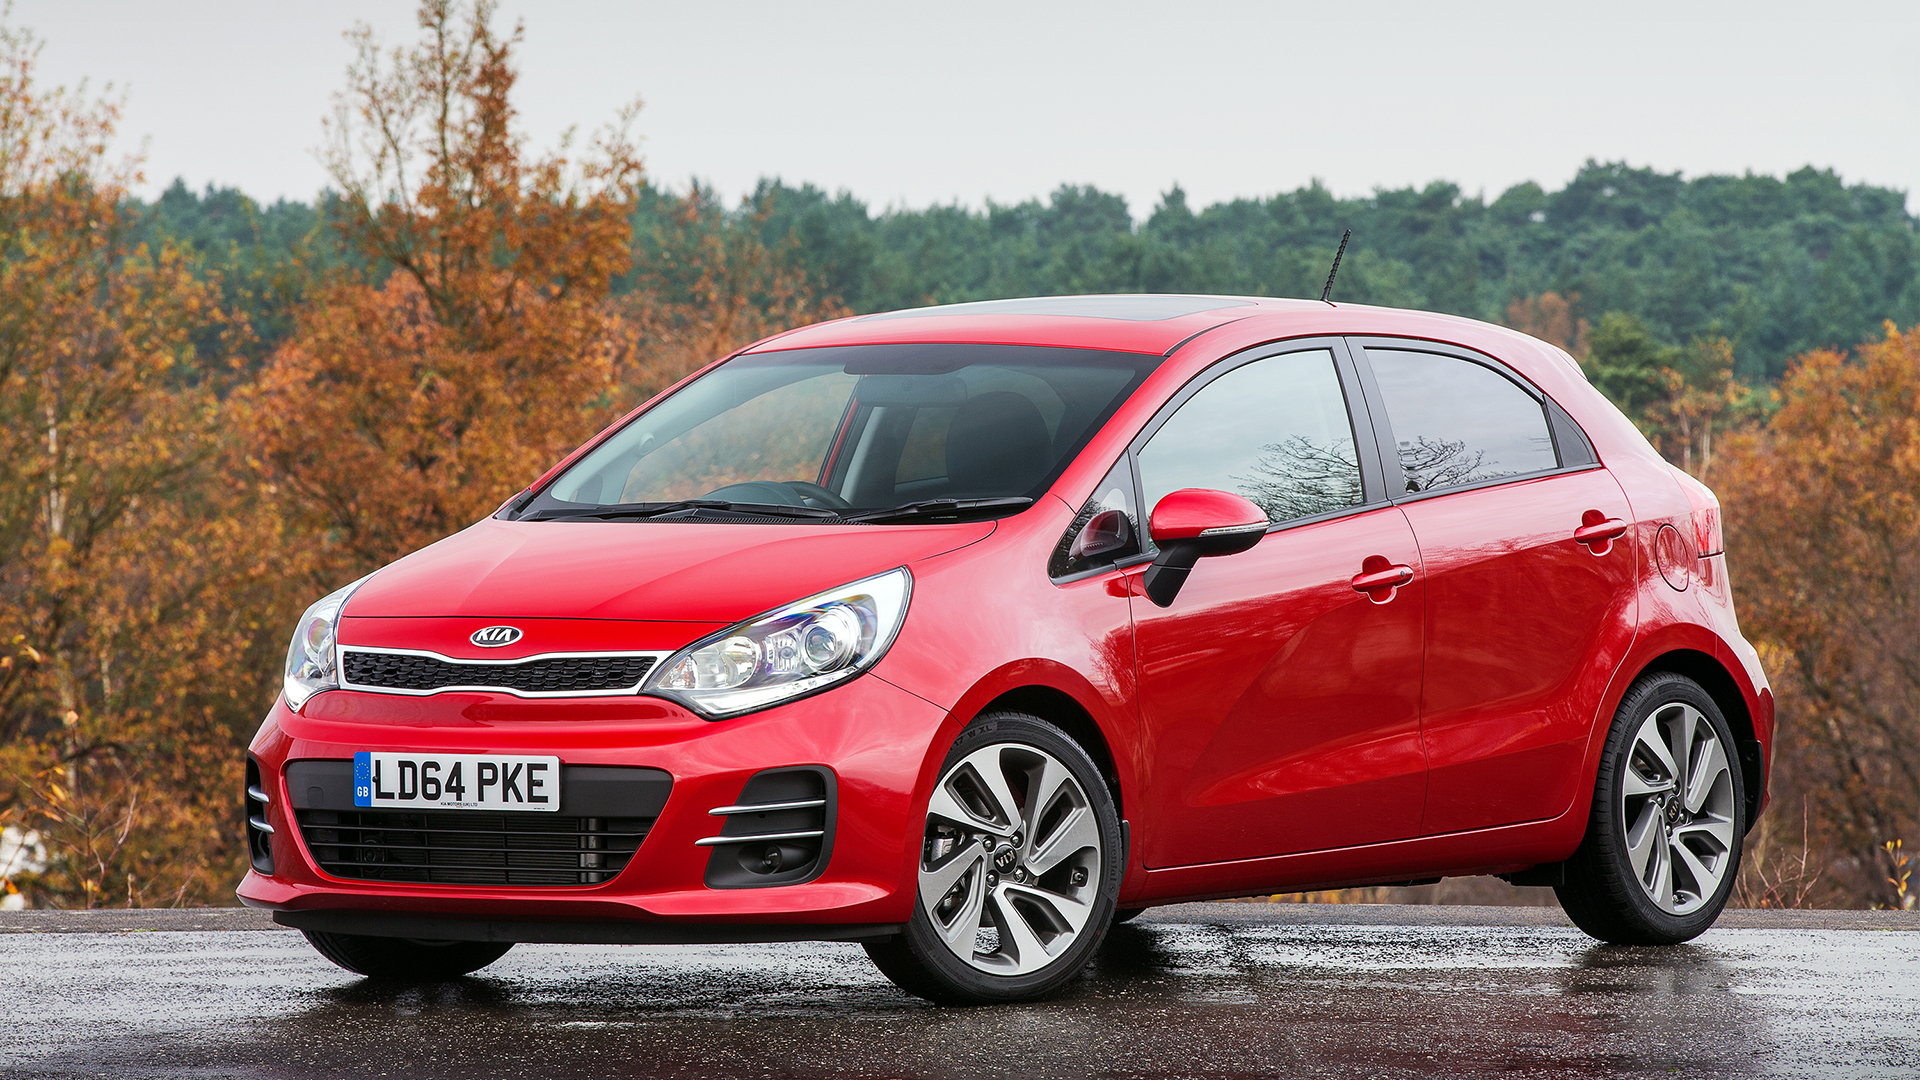 used kia rio cars for sale on auto trader uk. Black Bedroom Furniture Sets. Home Design Ideas